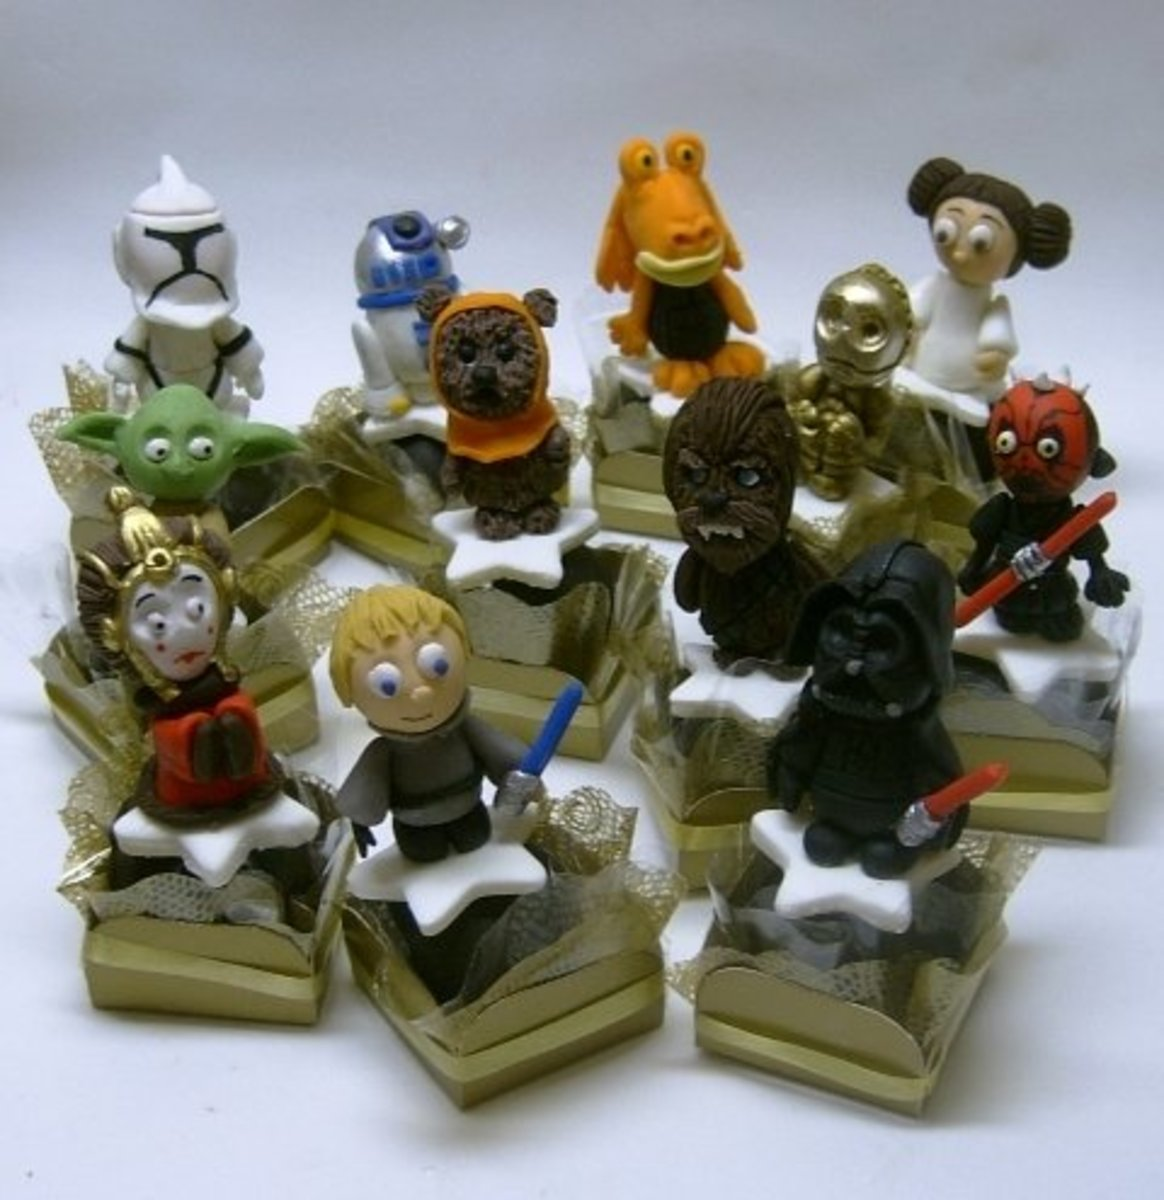 Star Wars Party truffles - all edible chocolate + fondant by Ana Fuji, All Rights Reserved.